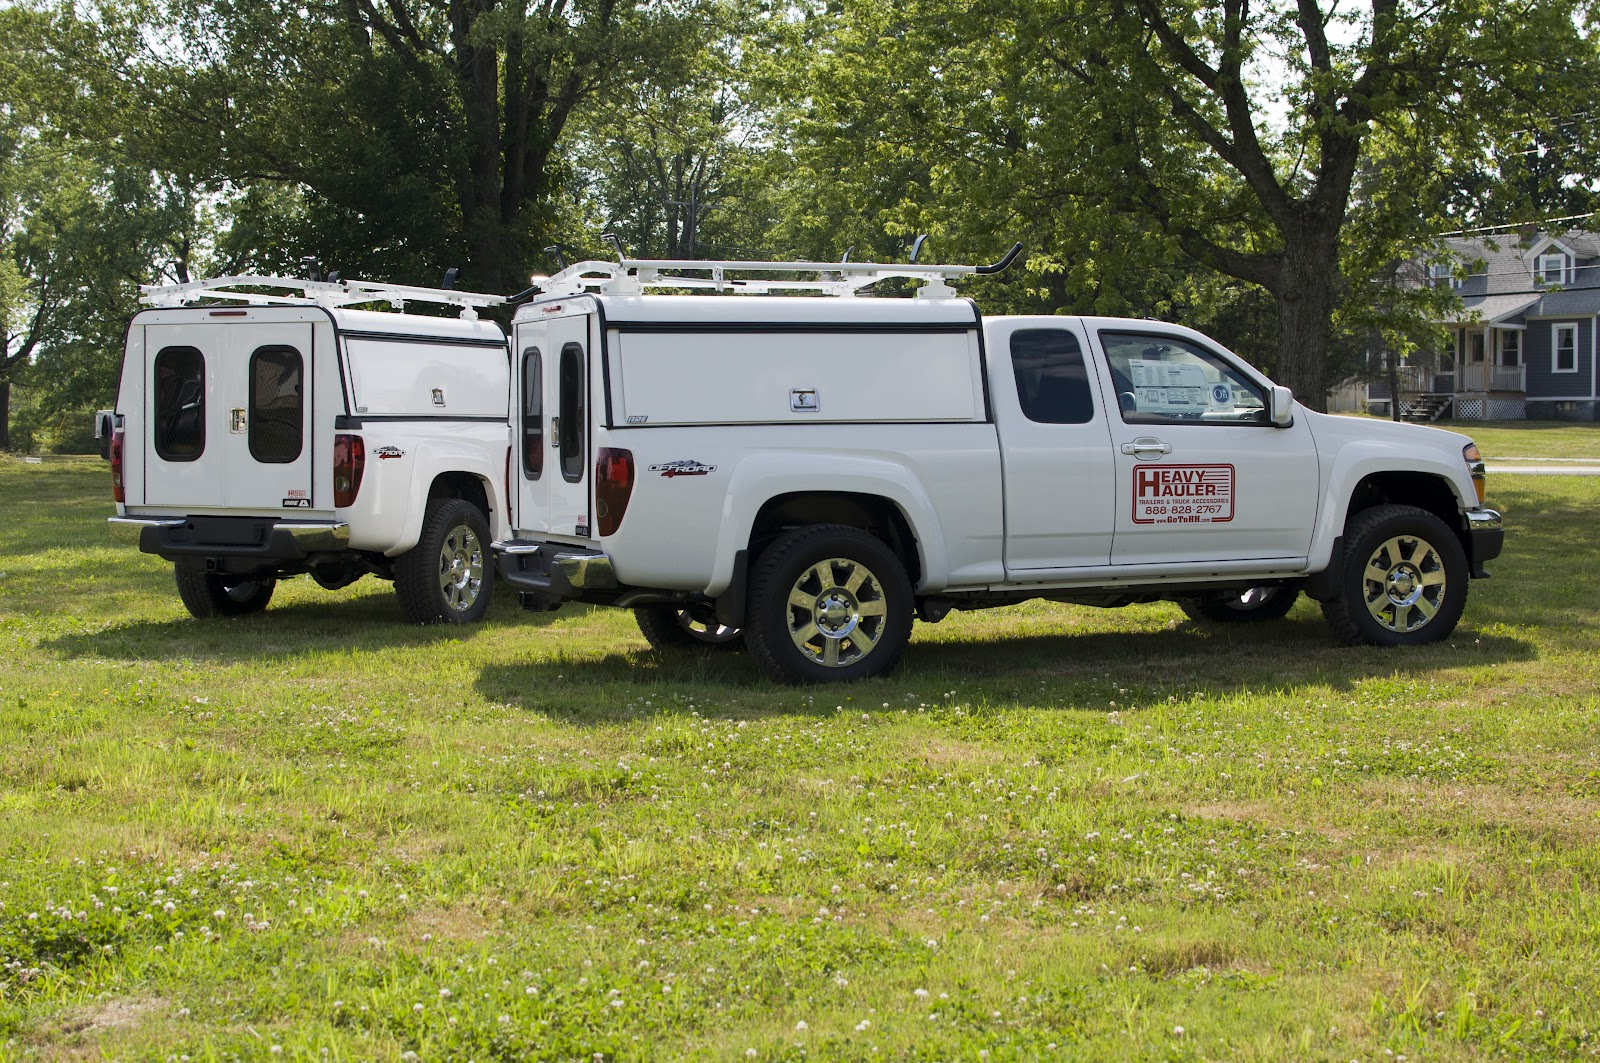 Two 2012 GMC Canyon Pickup Trucks with new ARE DCU Truck